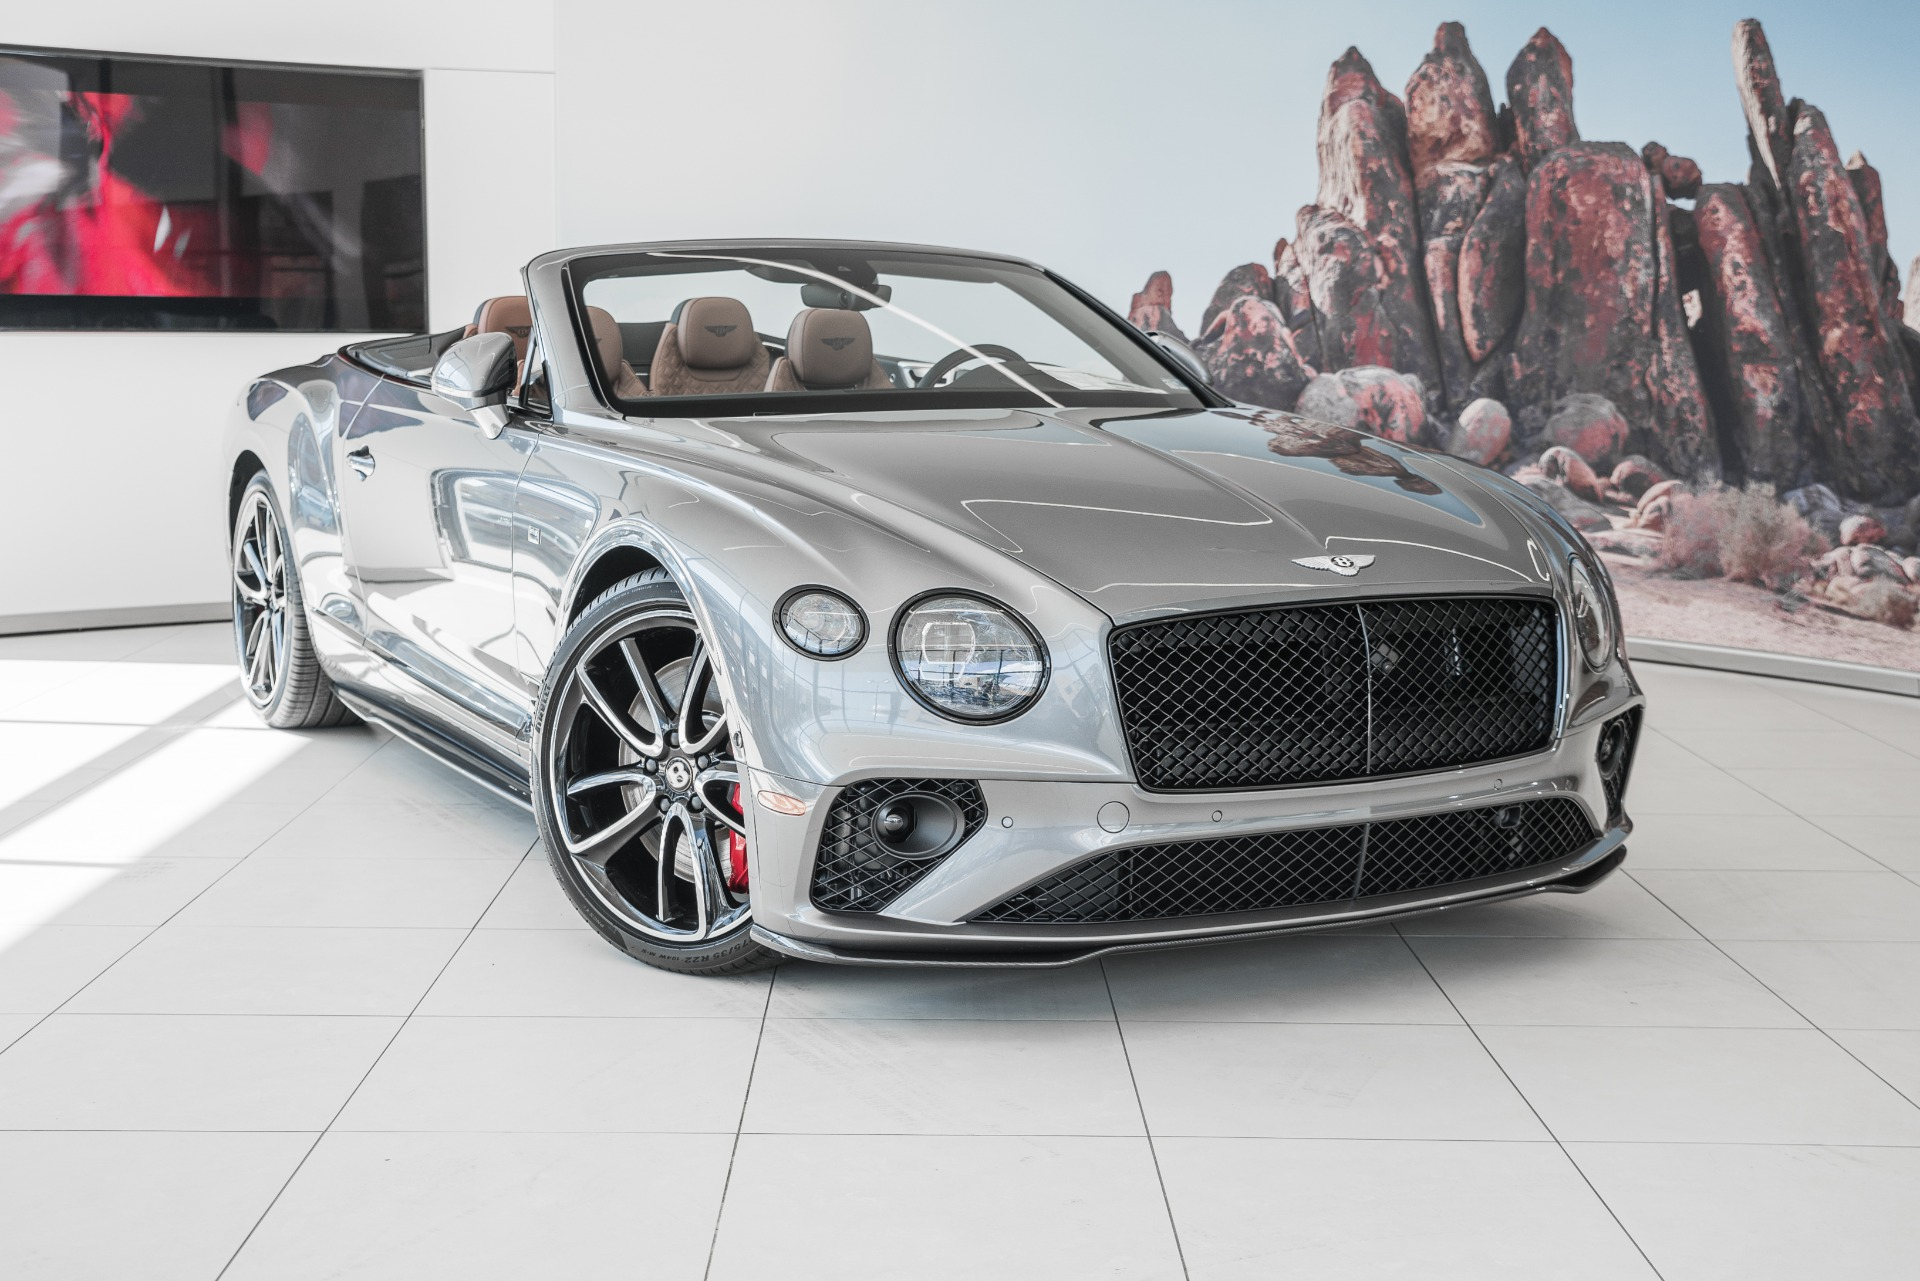 2020 Bentley Continental Gt V8 Stock 20n077729 For Sale Near Vienna Va Va Bentley Dealer For Sale In Vienna Va 20n077729 Exclusive Automotive Group